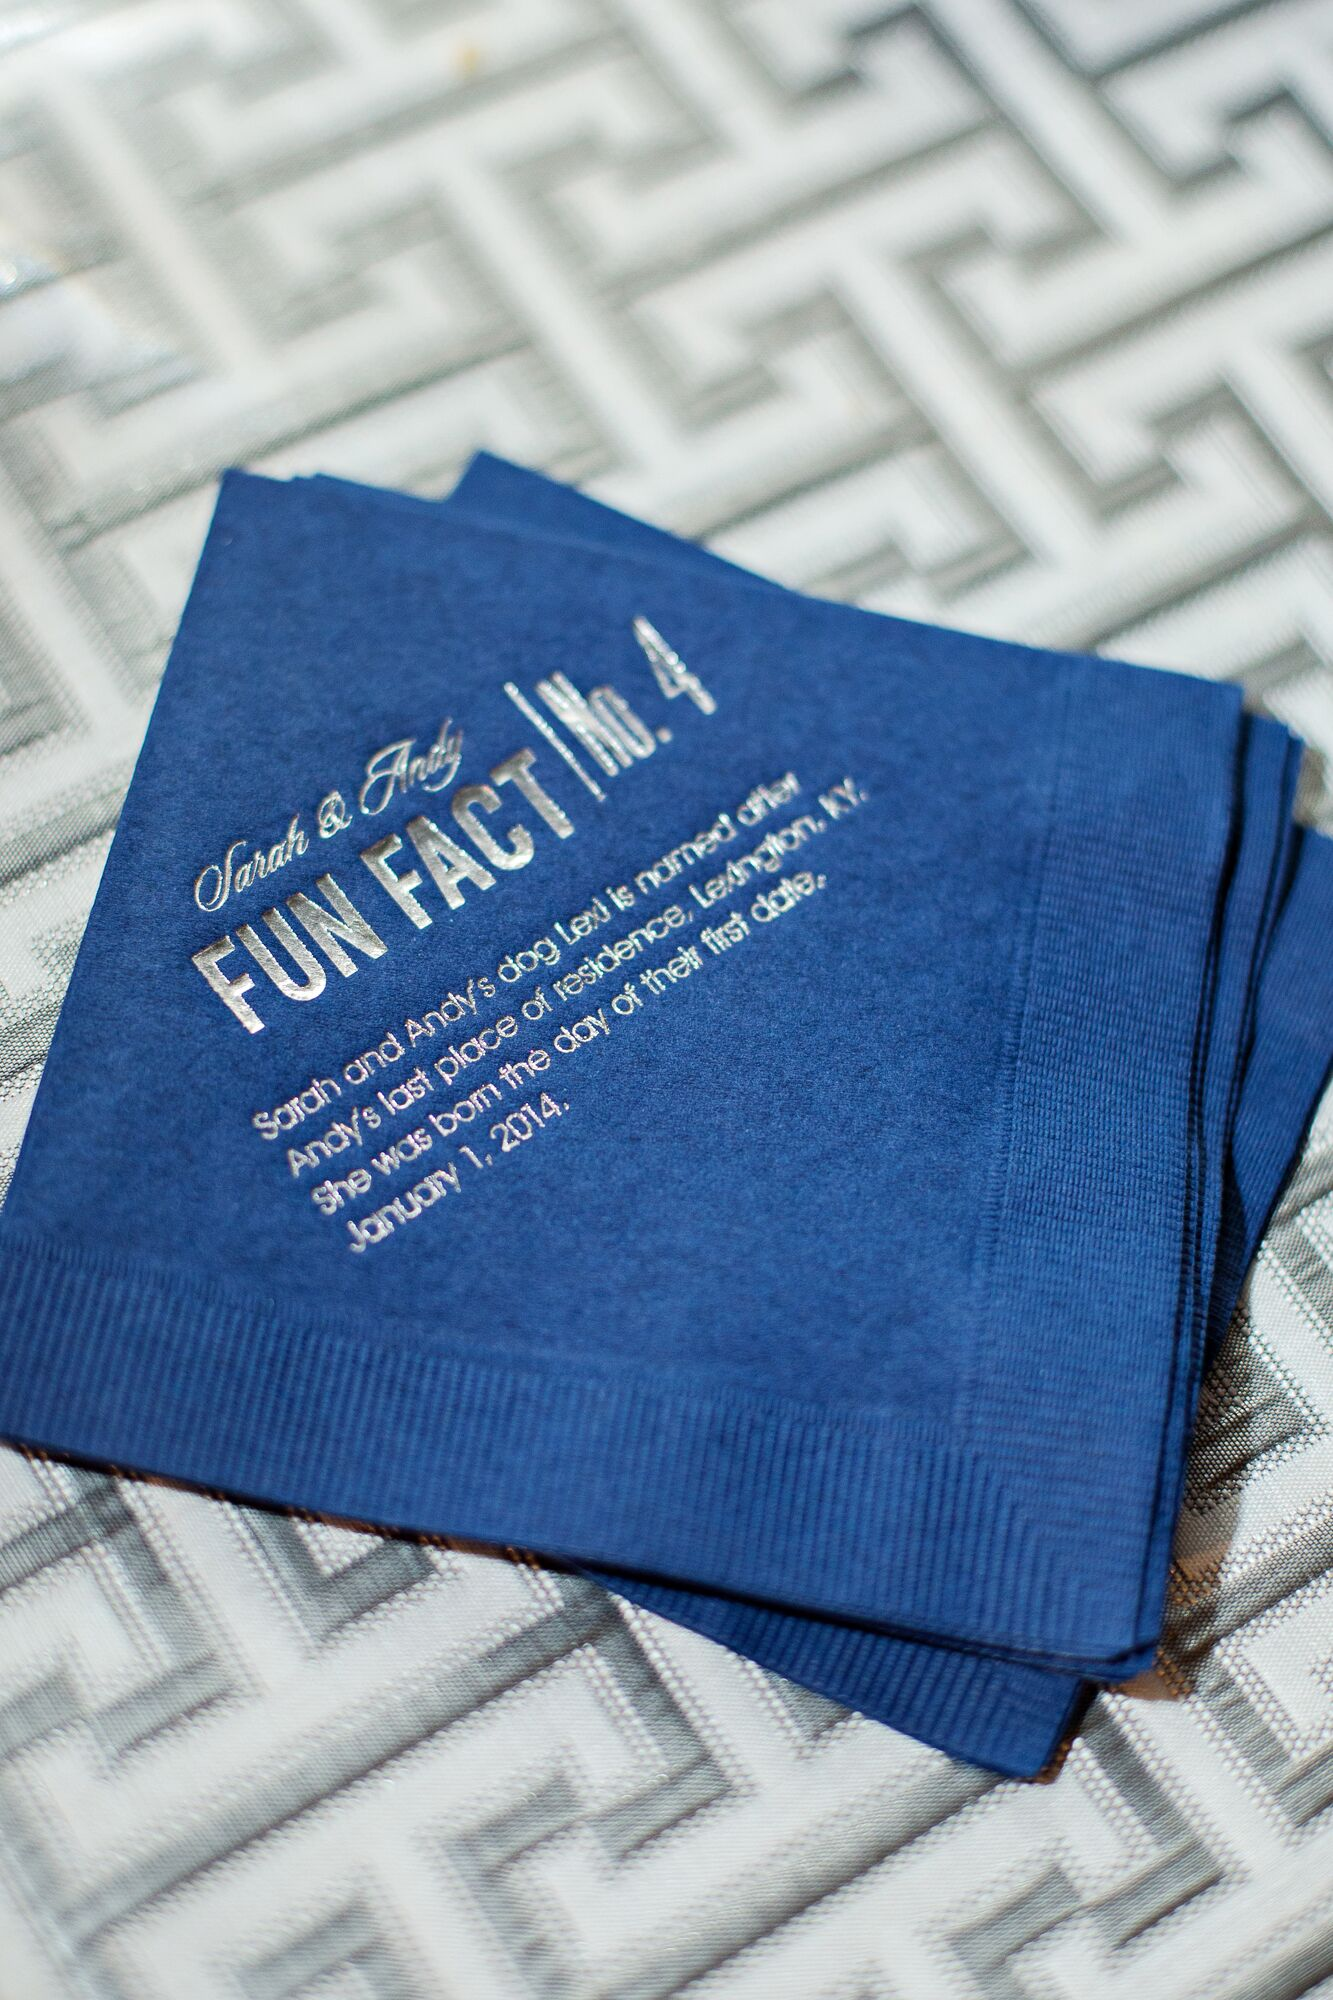 Personalized Cocktail Napkins With Fun Facts In Silver Foil Font